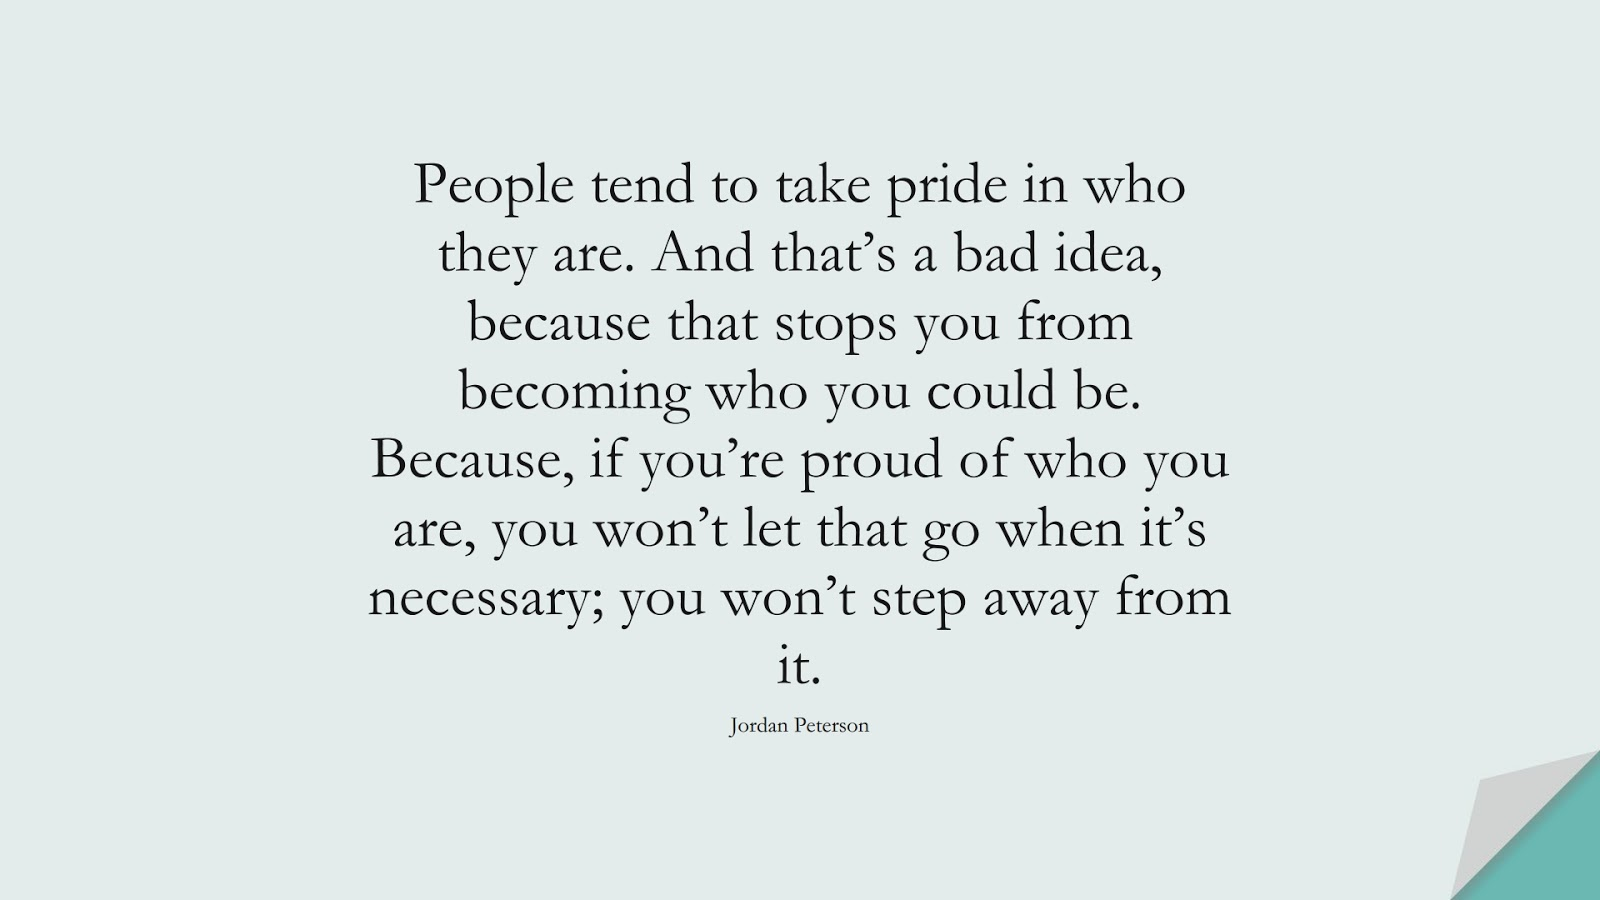 People tend to take pride in who they are. And that's a bad idea, because that stops you from becoming who you could be. Because, if you're proud of who you are, you won't let that go when it's necessary; you won't step away from it. (Jordan Peterson);  #BeYourselfQuotes